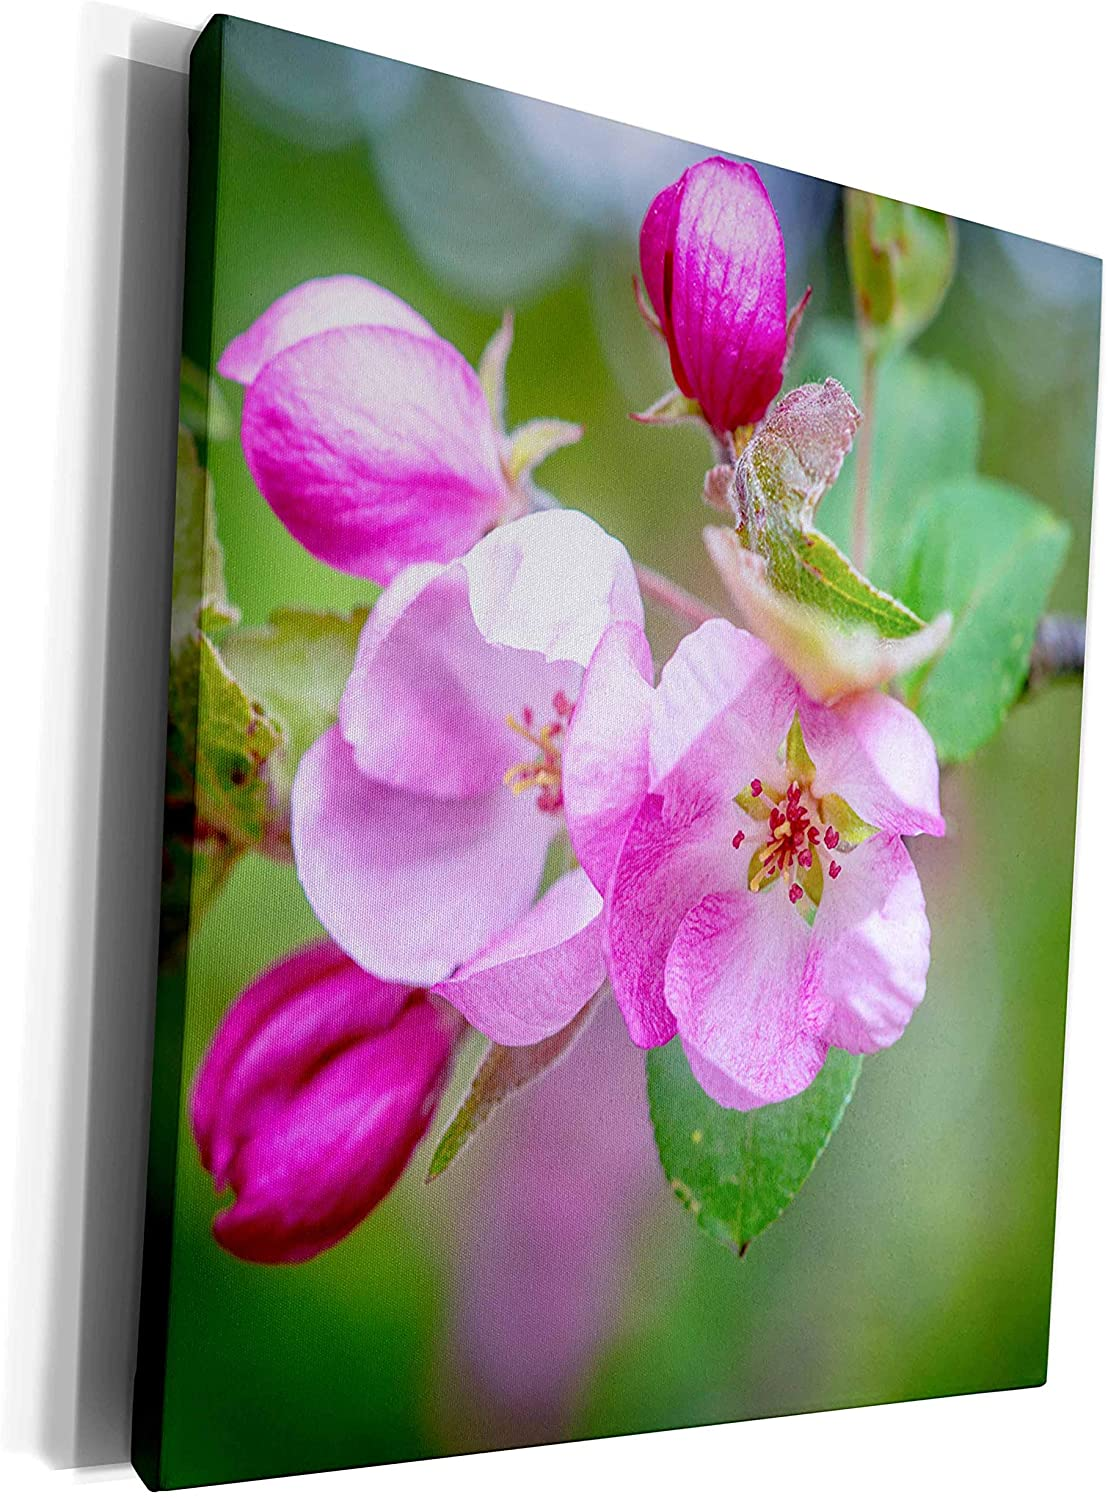 3dRose Alexis Photography - Flowers Crab Apple - Two pink crab apple flowers, soft green background - Museum Grade Canvas Wrap (cw_270531_1)